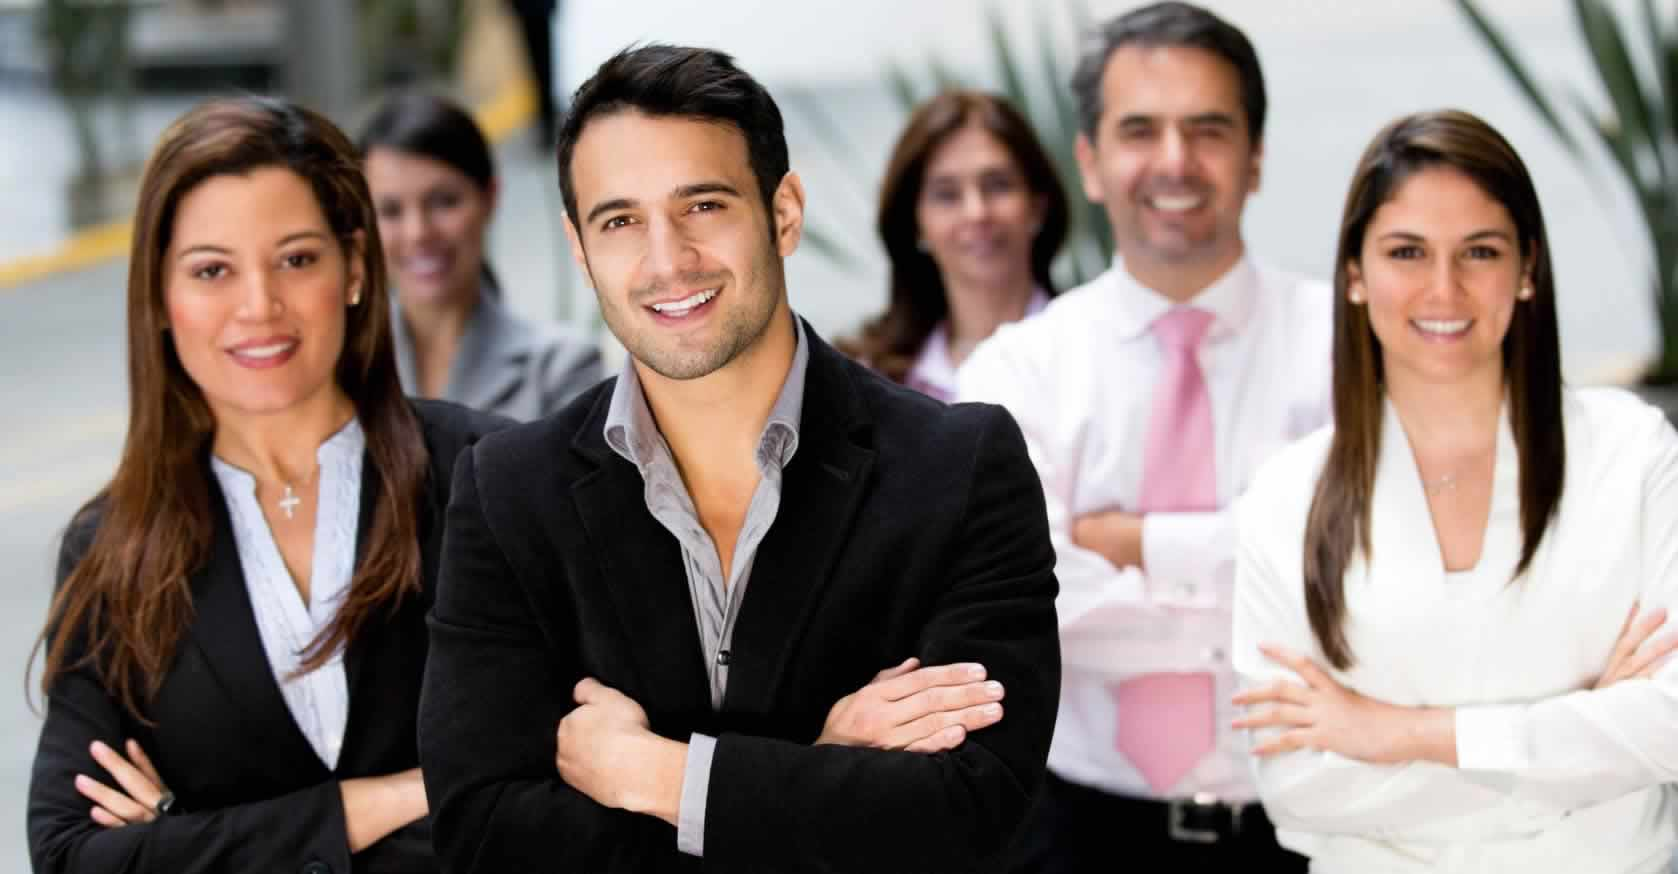 business people in large office  Copyright: <a href='http://www.123rf.com/profile_andresr'>andresr / 123RF Stock Photo</a>